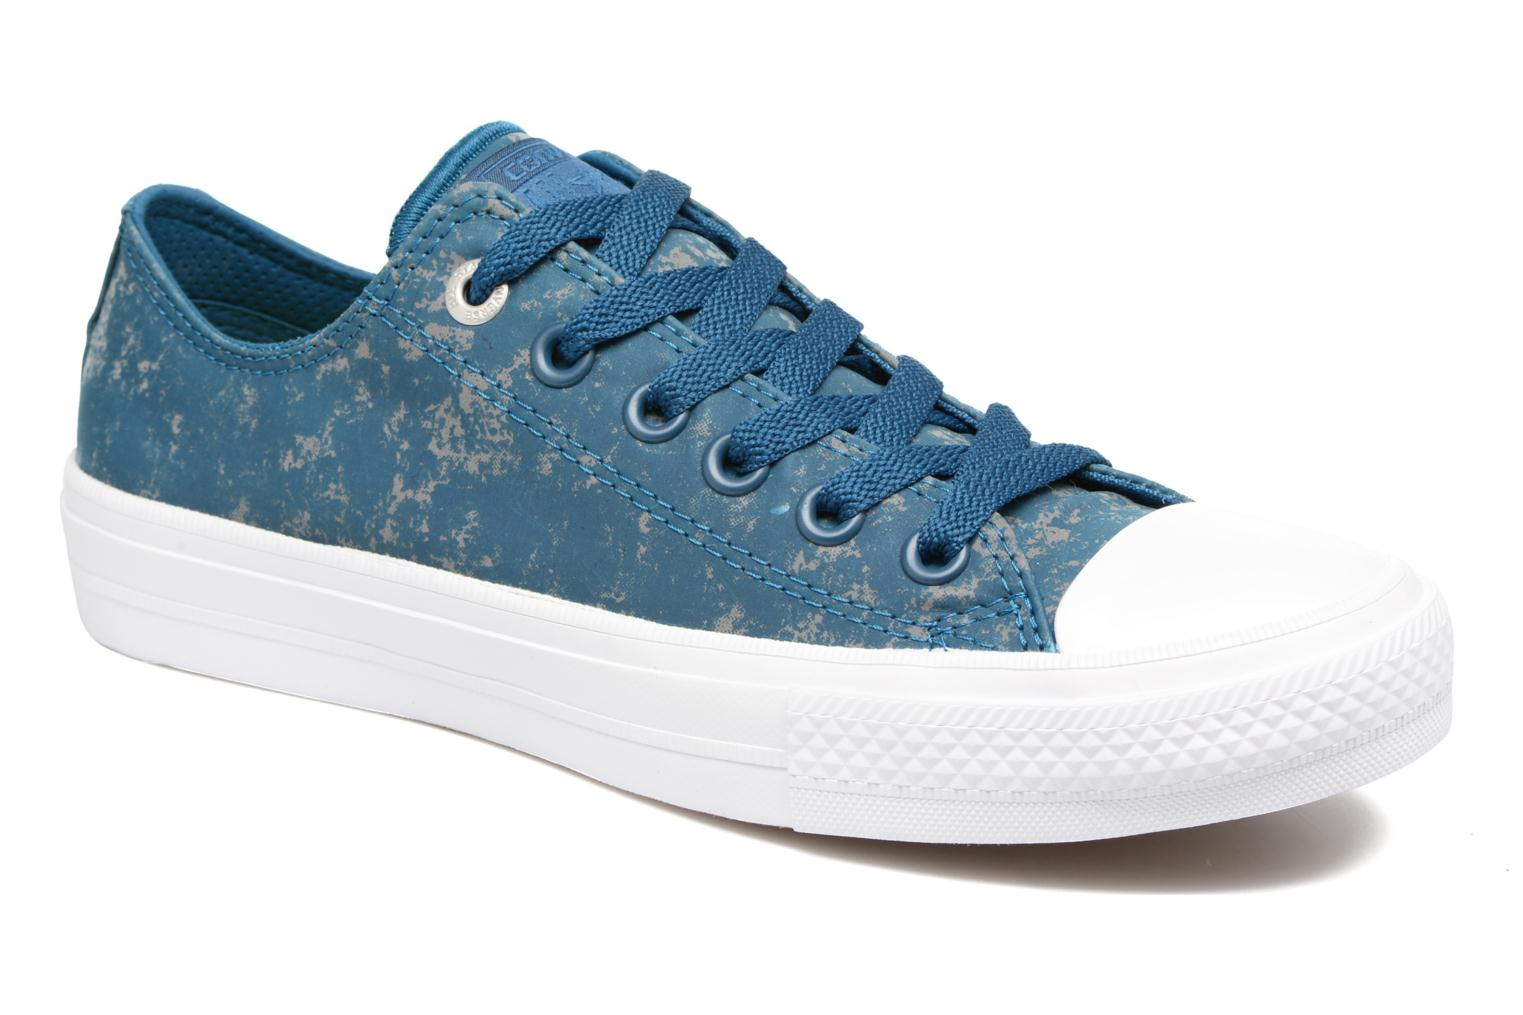 Chuck Taylor All Star II Ox Reflective Wash W Blue Lagoon/Pure Silver/White